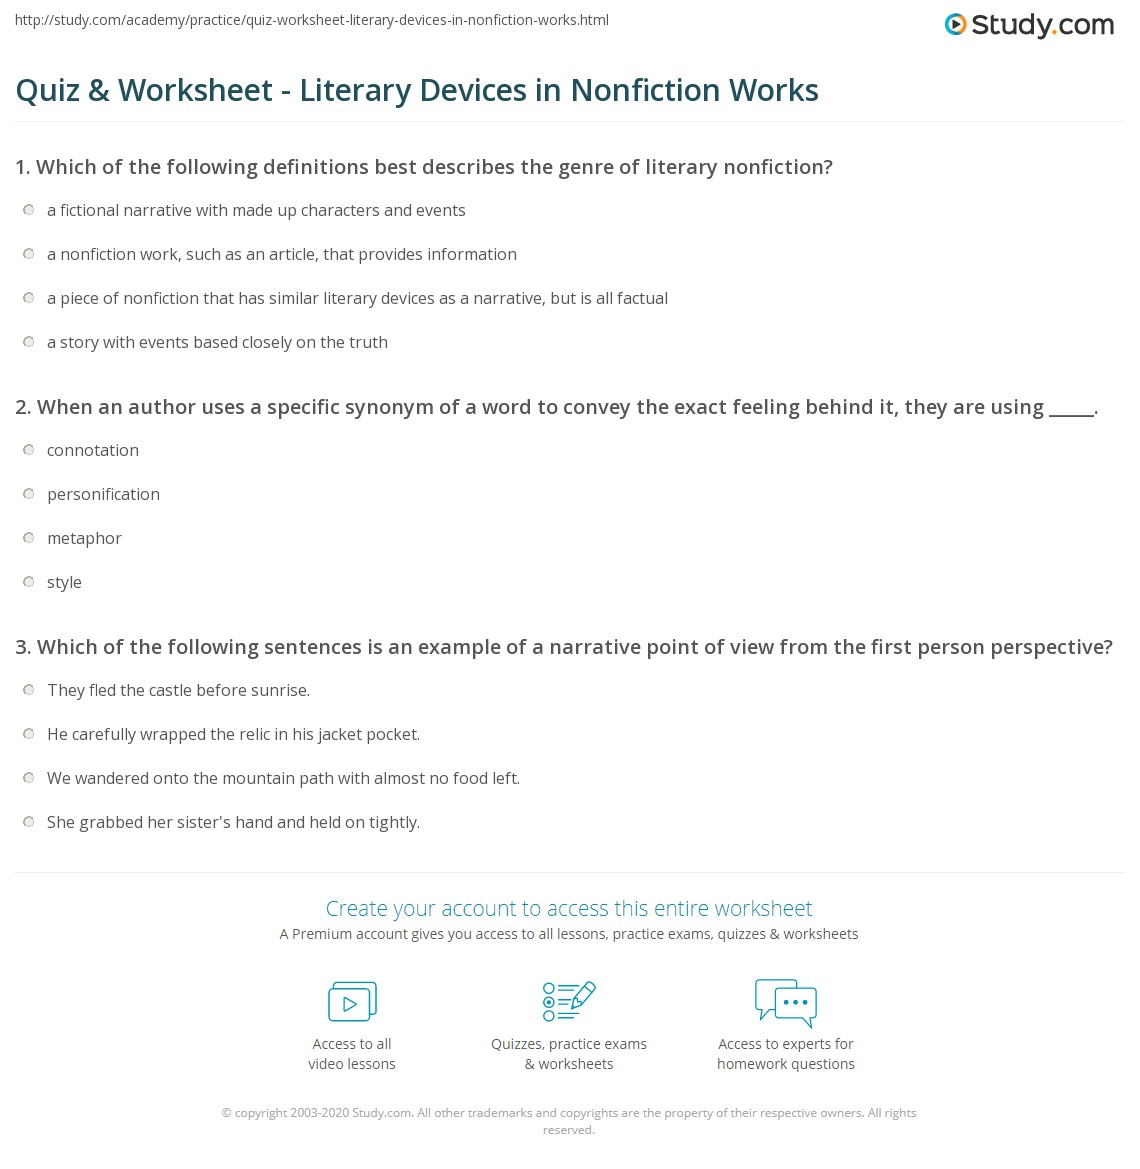 Quiz Worksheet Literary Devices In Nonfiction Works Studycom